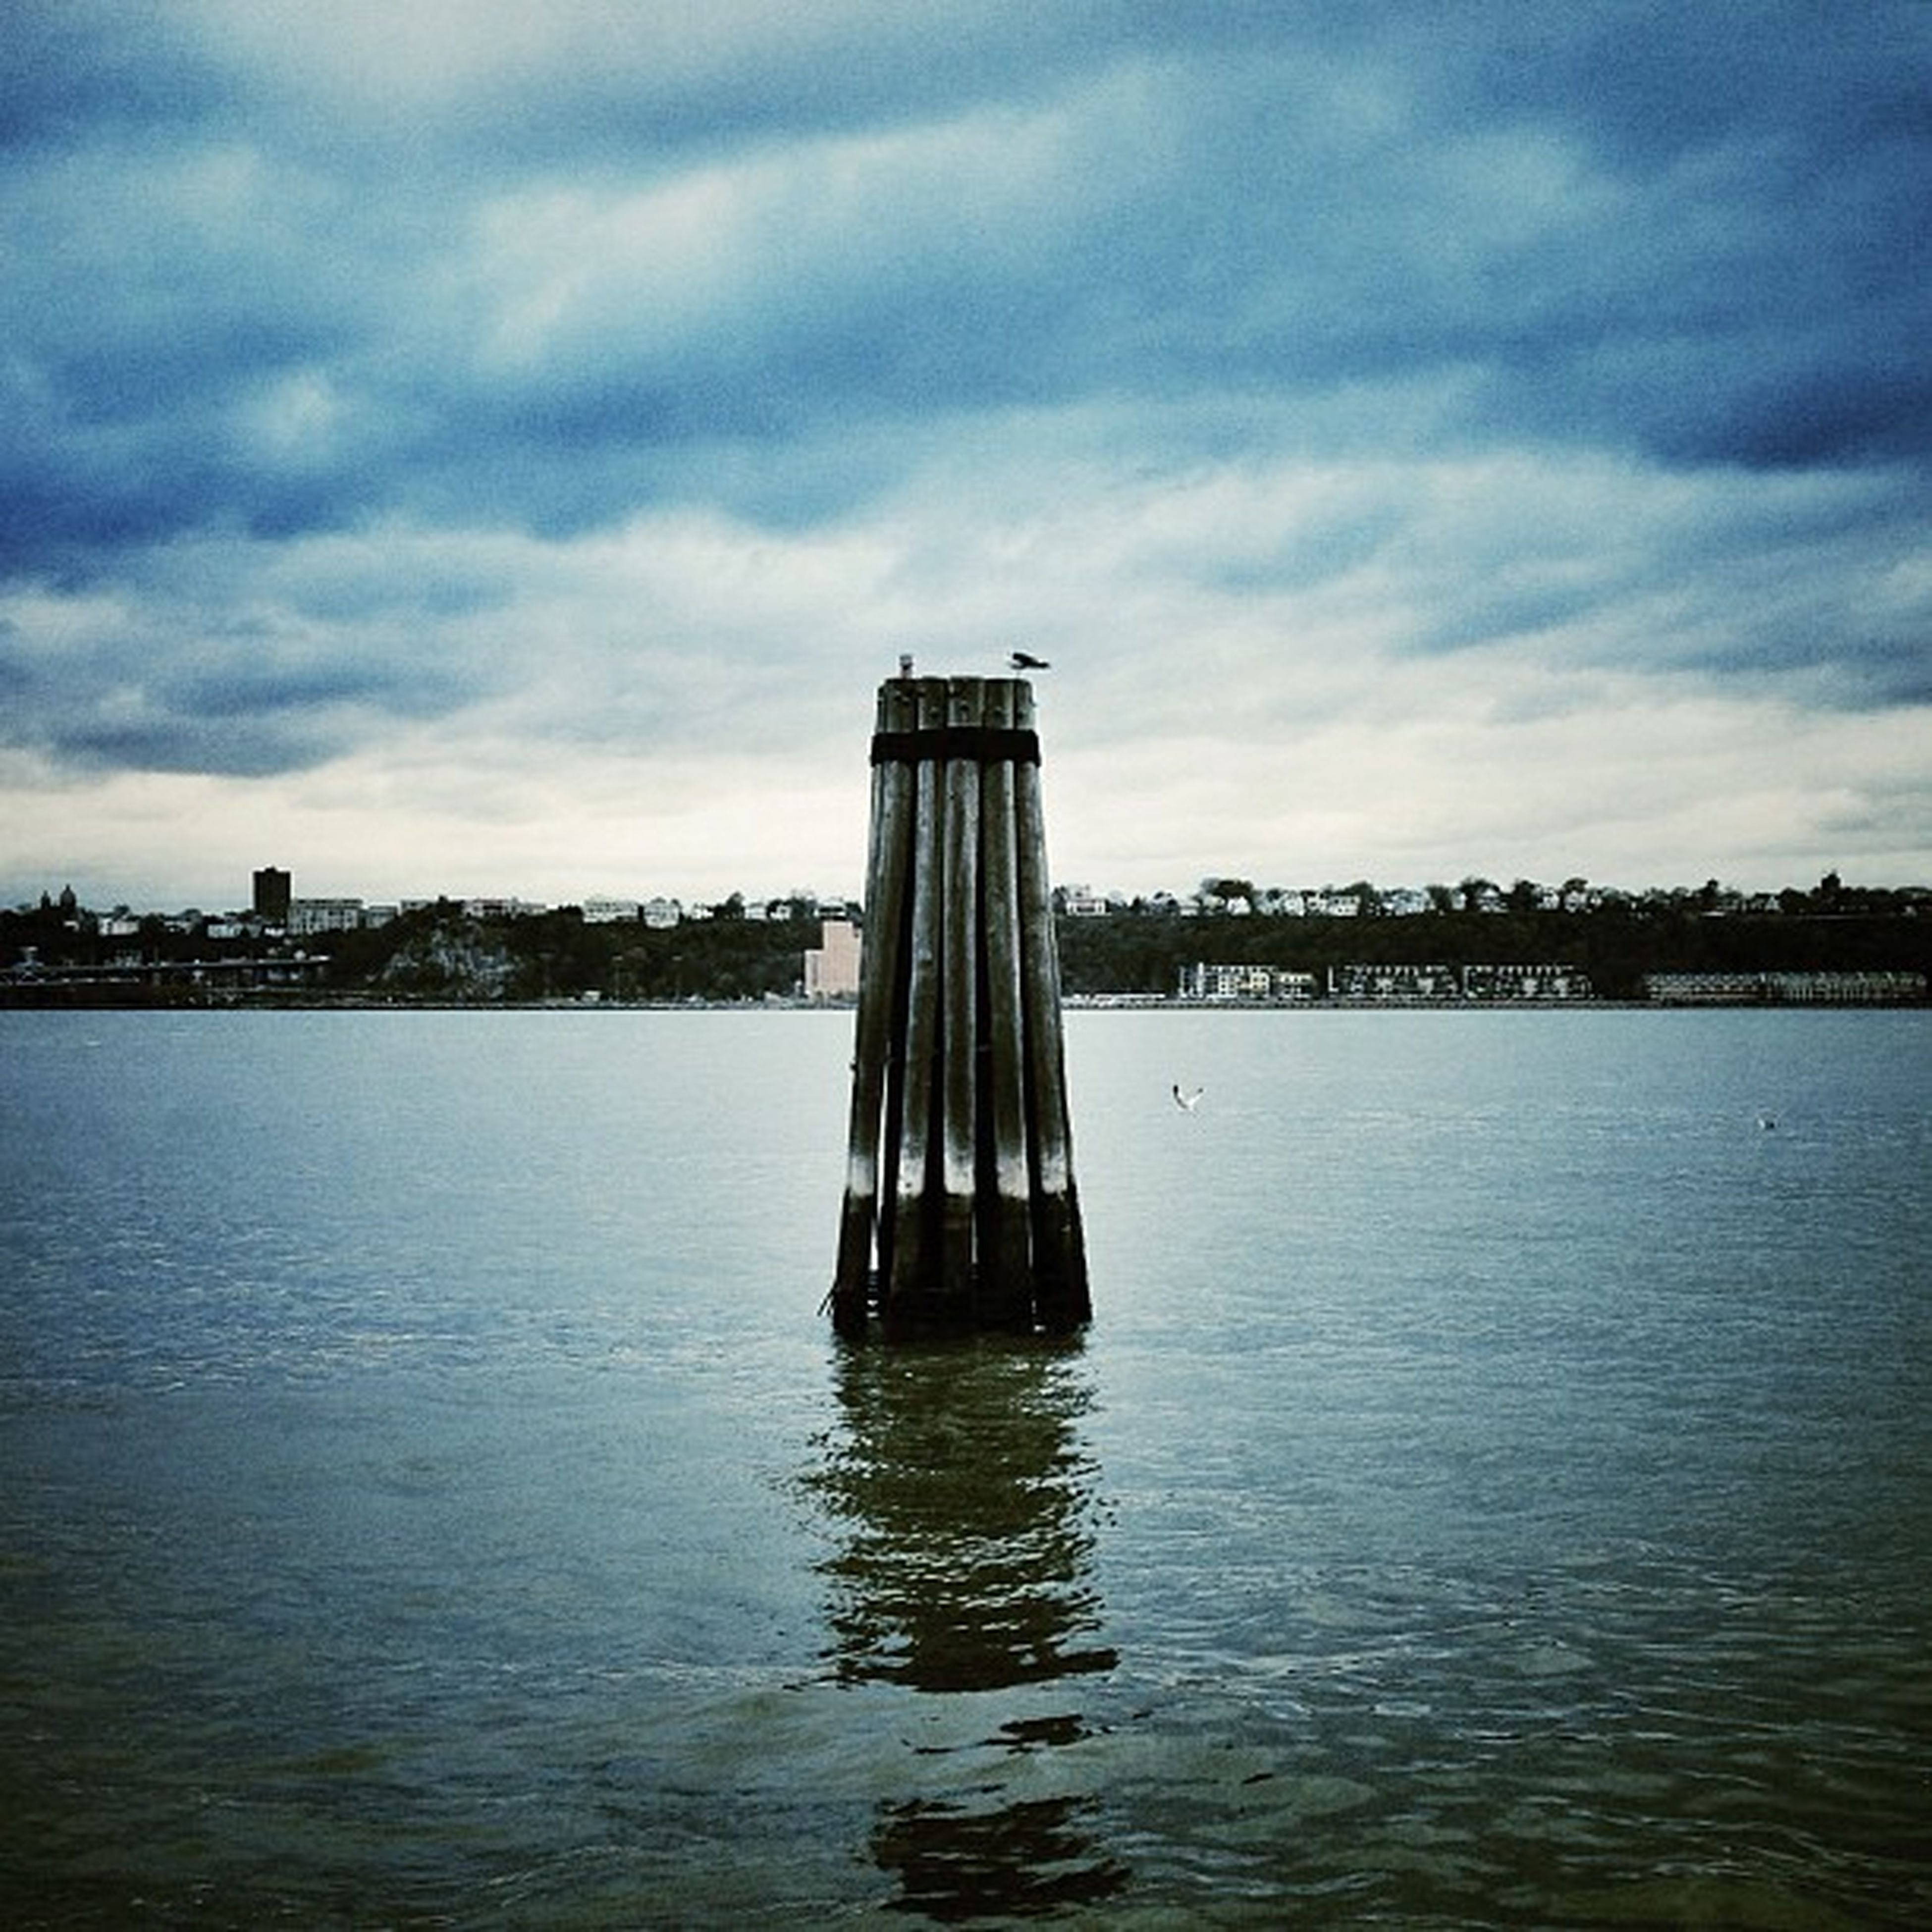 water, sky, architecture, built structure, waterfront, cloud - sky, building exterior, sea, cloudy, cloud, rippled, river, nature, tranquility, tranquil scene, reflection, no people, outdoors, day, lake